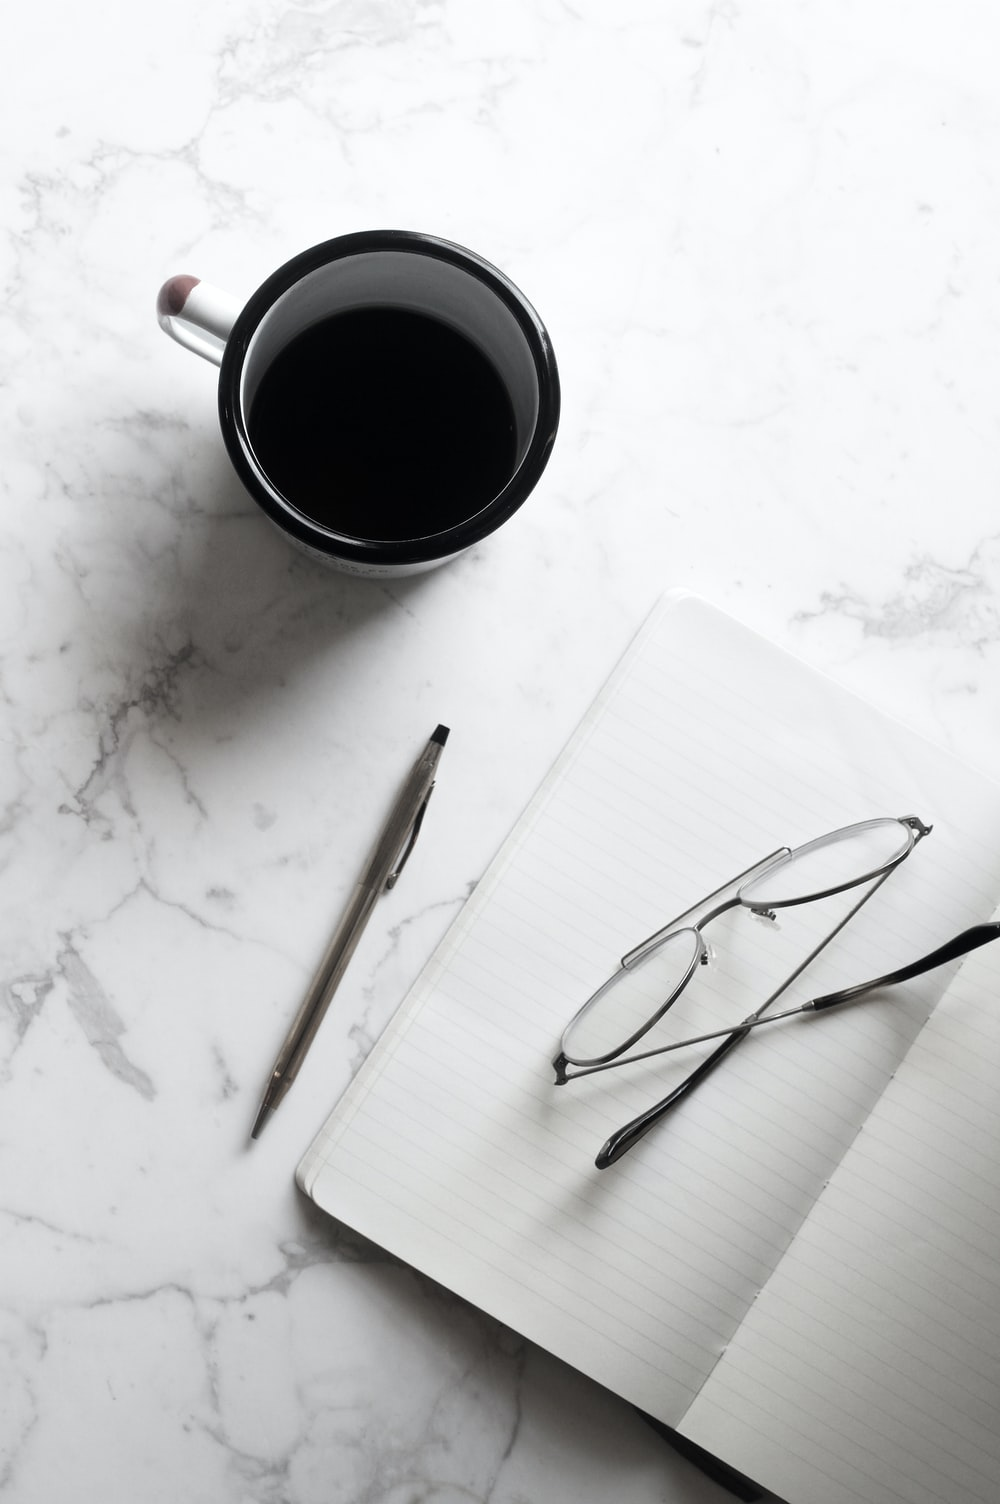 A cup of black coffee next to a notebook with a pencil and pair of glasses.